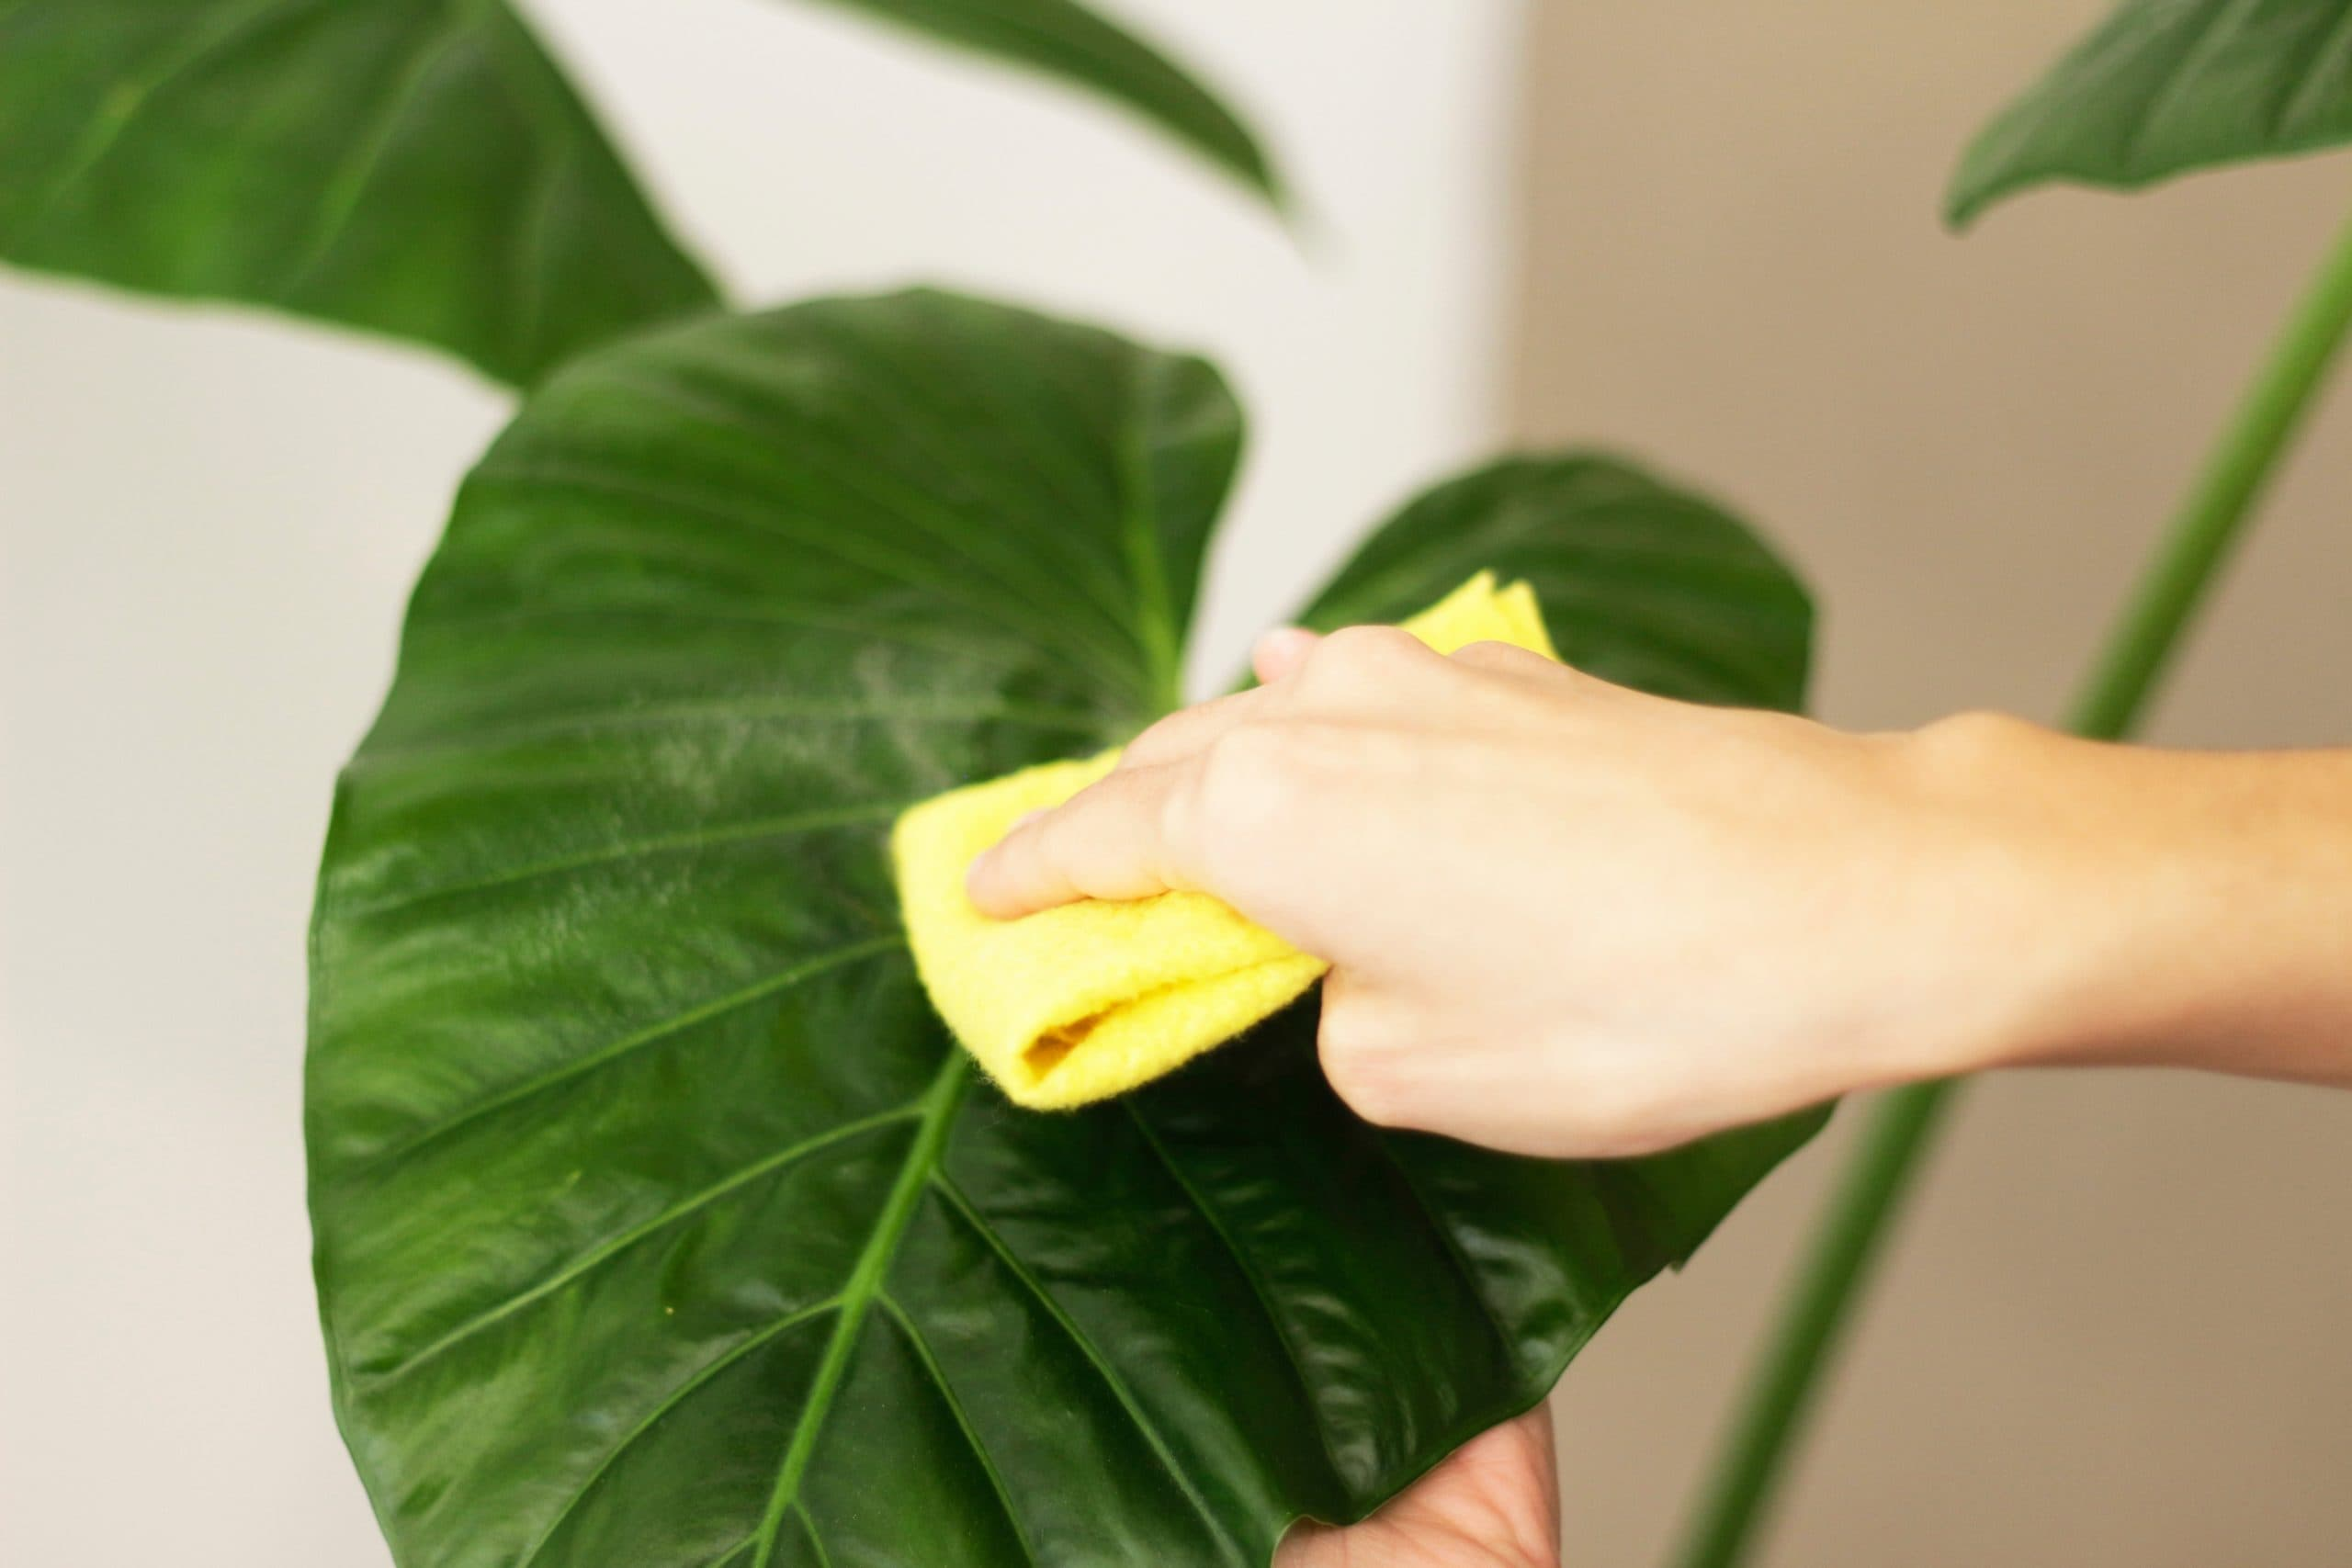 woman cleaning houseplant ATGEF8Y scaled The Clean Life